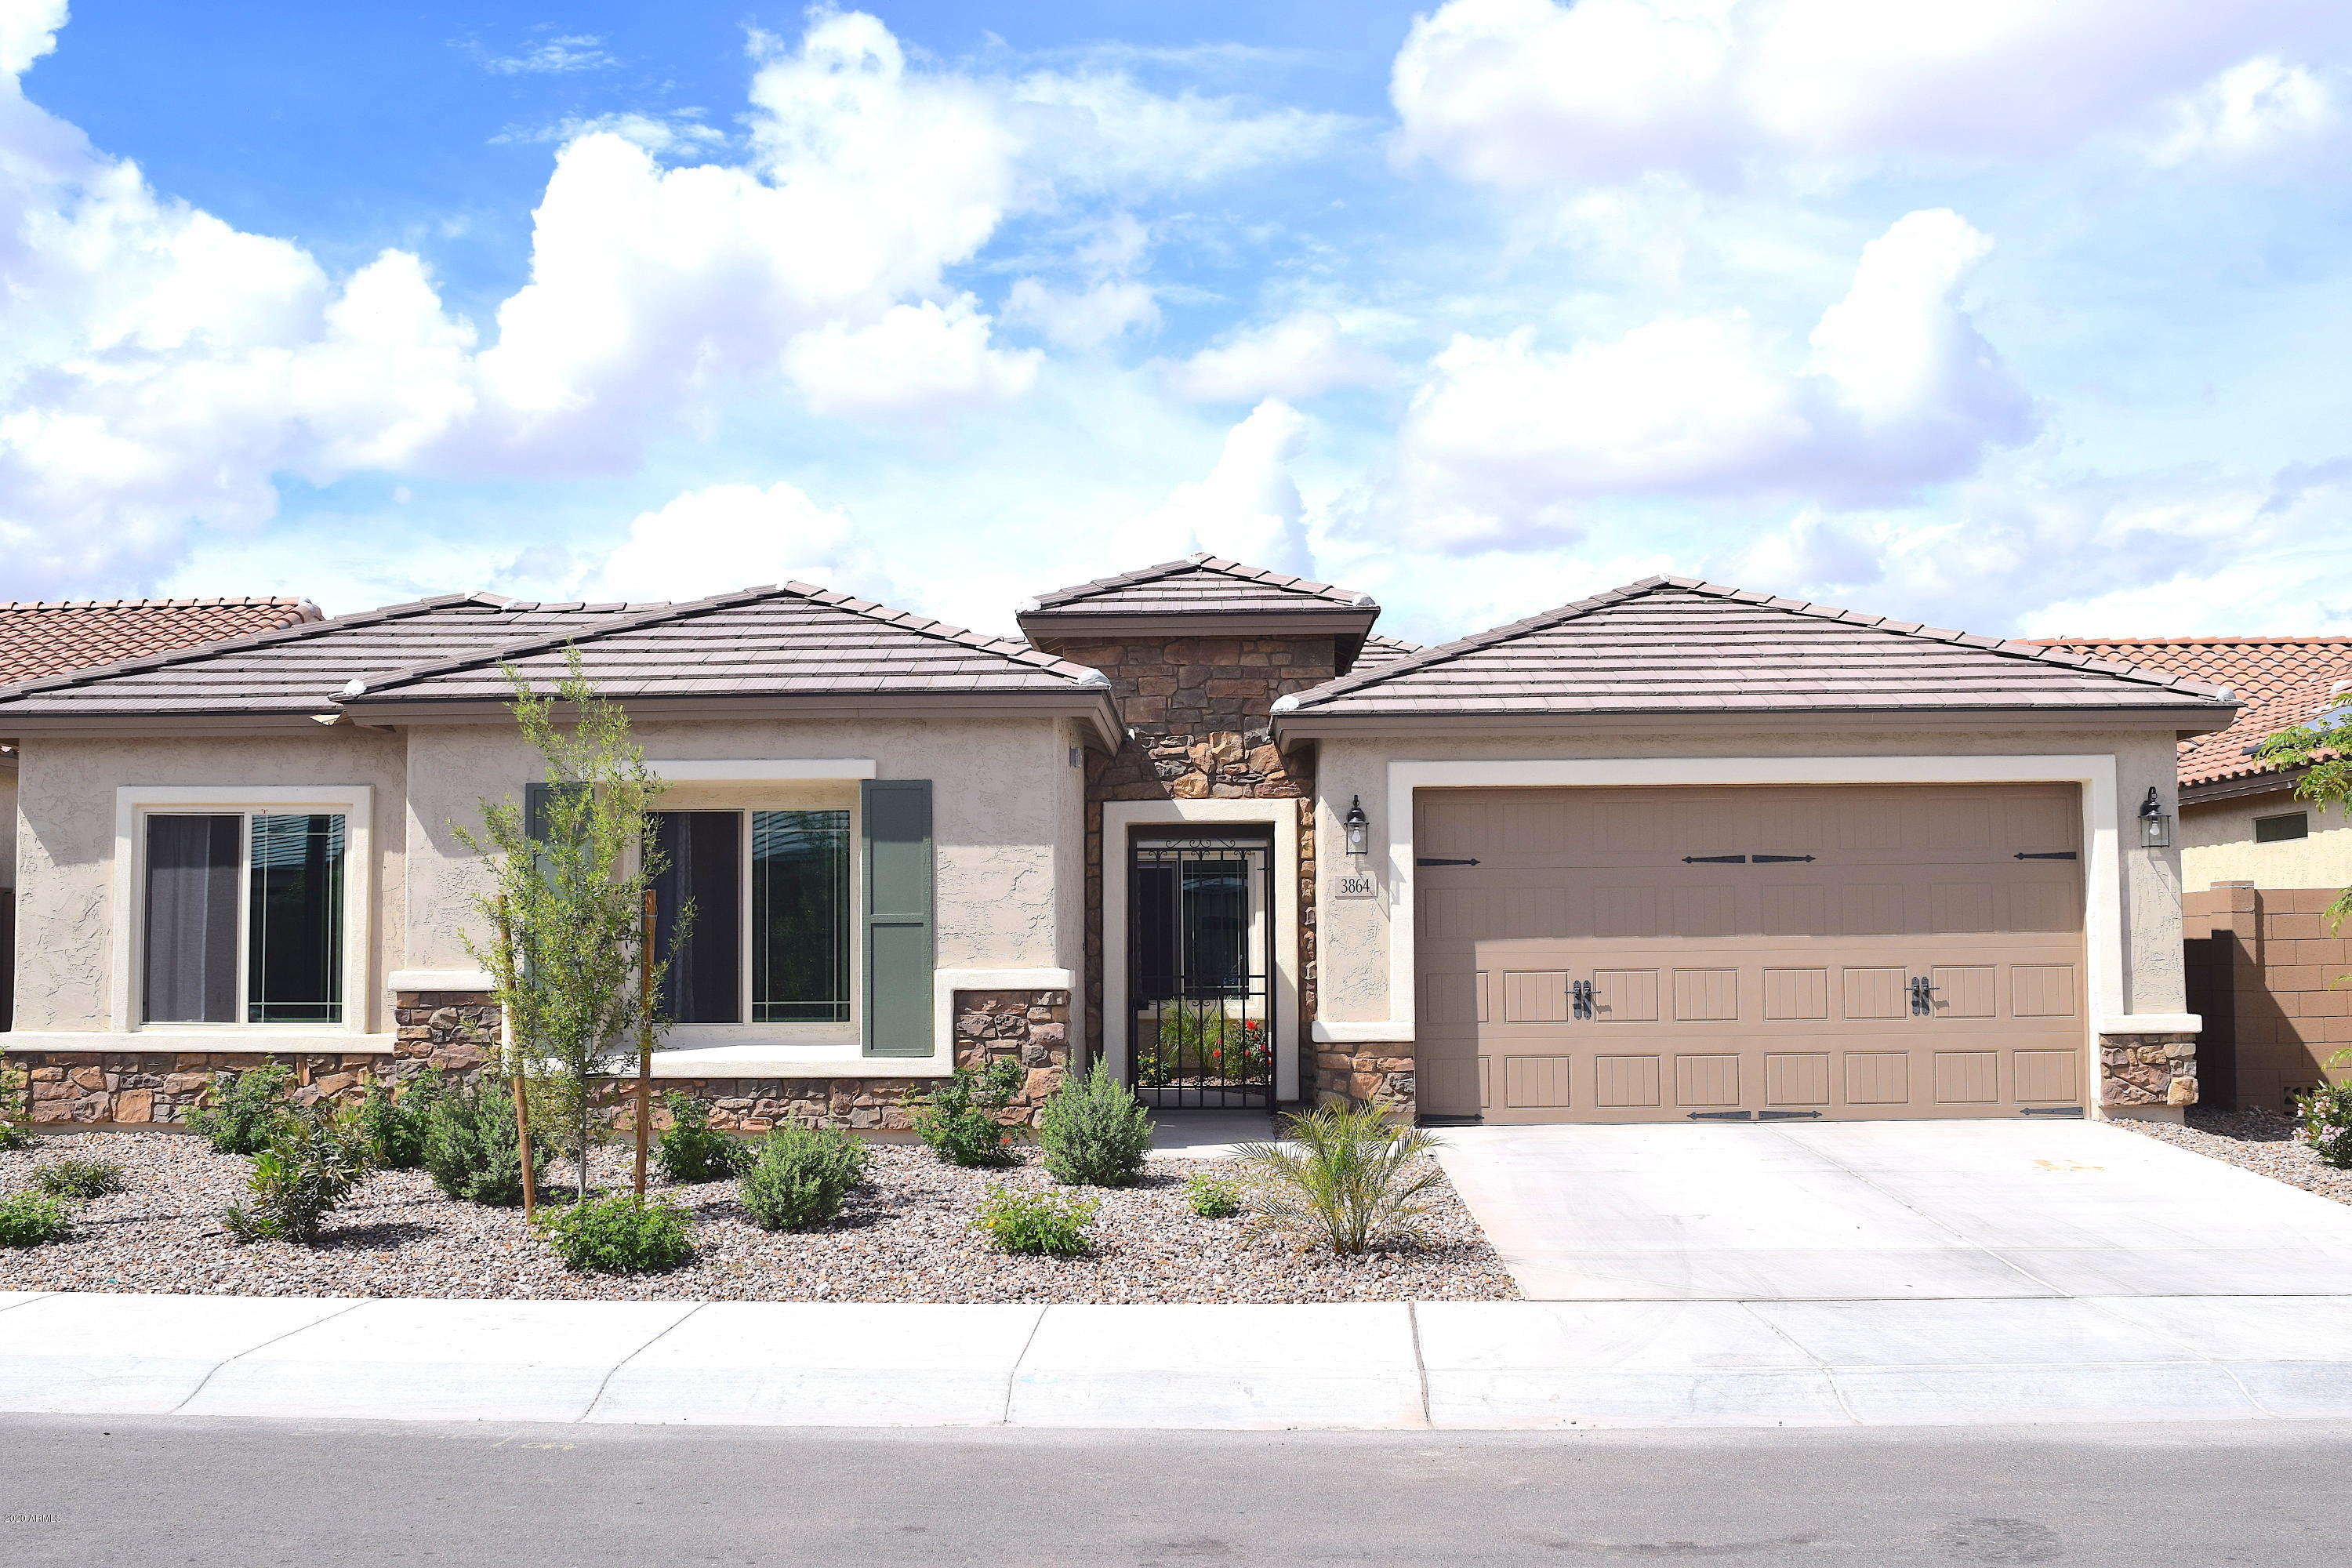 MLS 6078769 Florence Metro Area, Florence, AZ 85132 Florence Homes for Rent